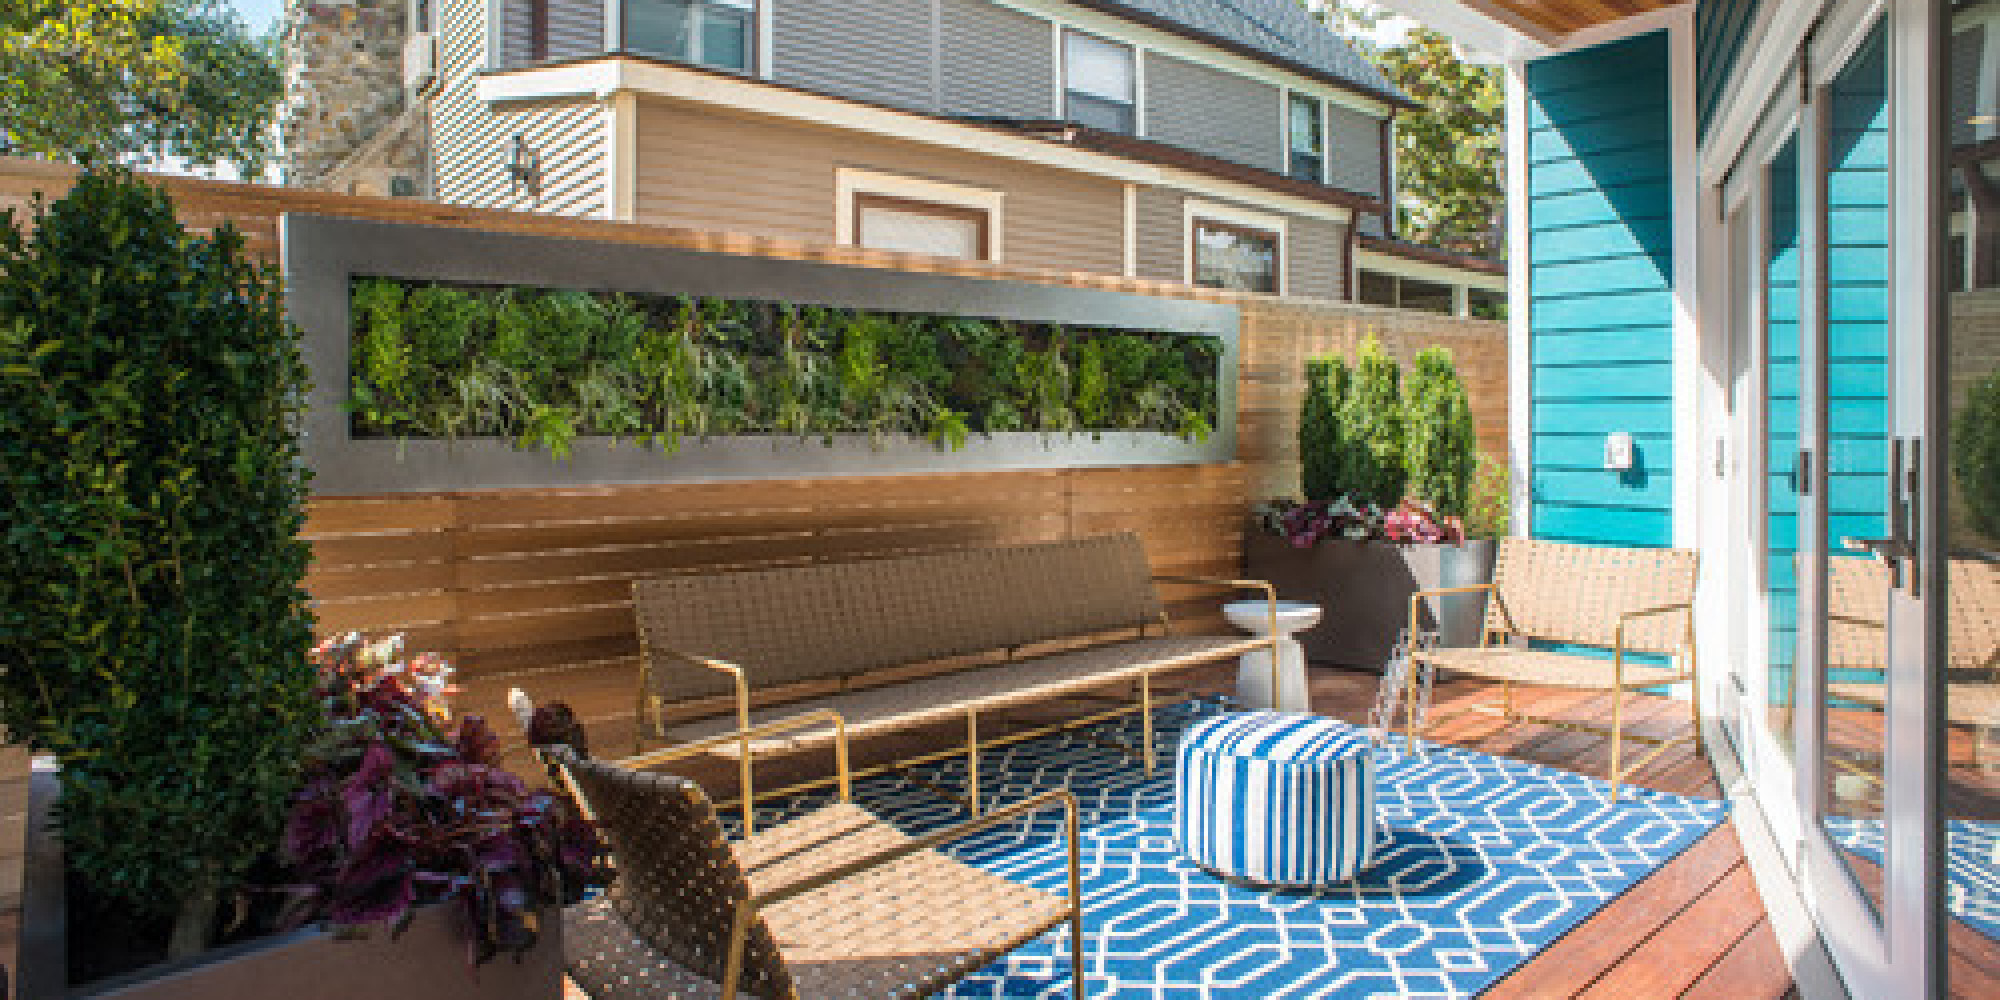 16 Ways to Get More from Your Small Backyard | HuffPost